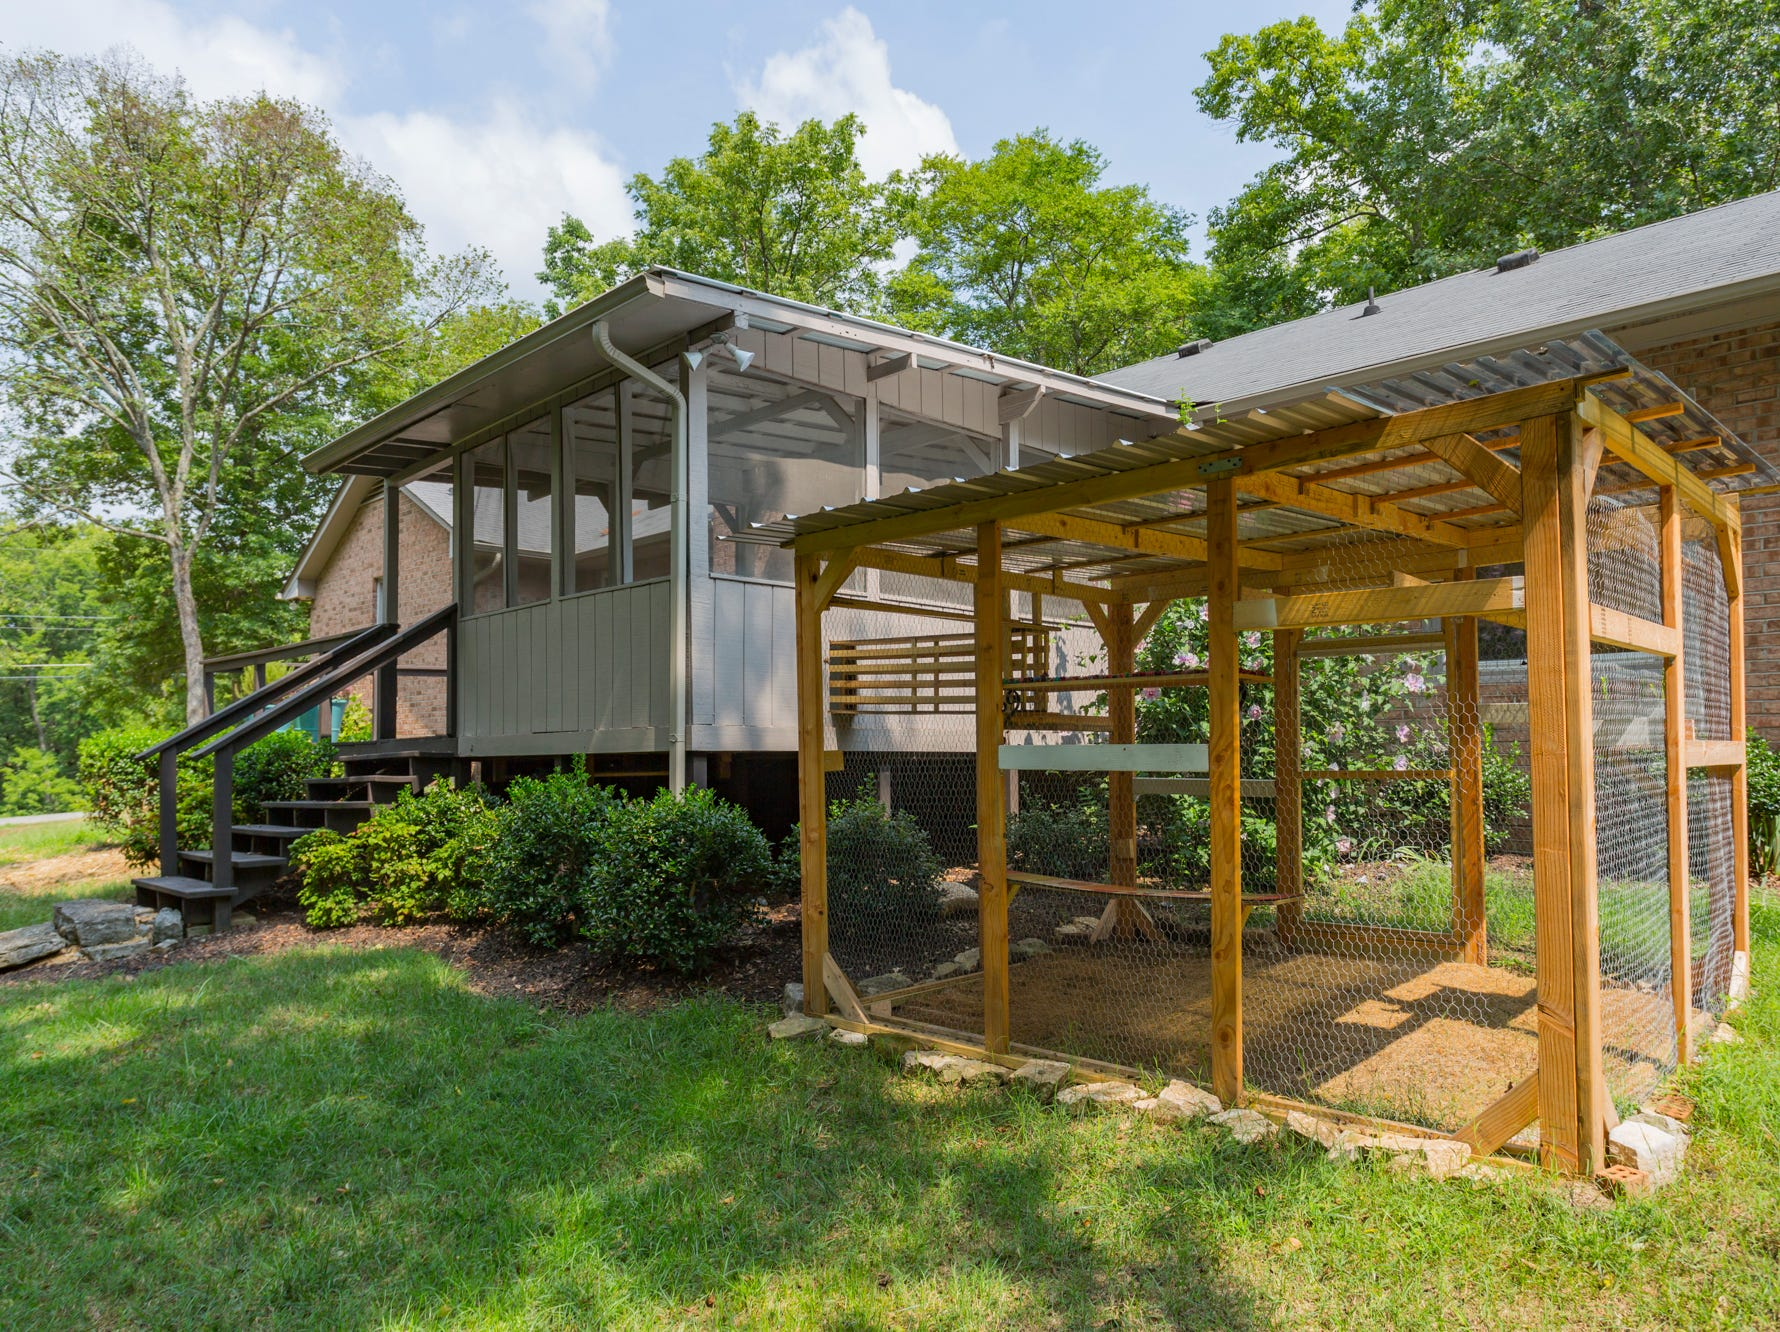 Just off the screened in porch sits a chicken coop. According to the real estate listing of this home, chickens are allowed in the city of Brentwood.